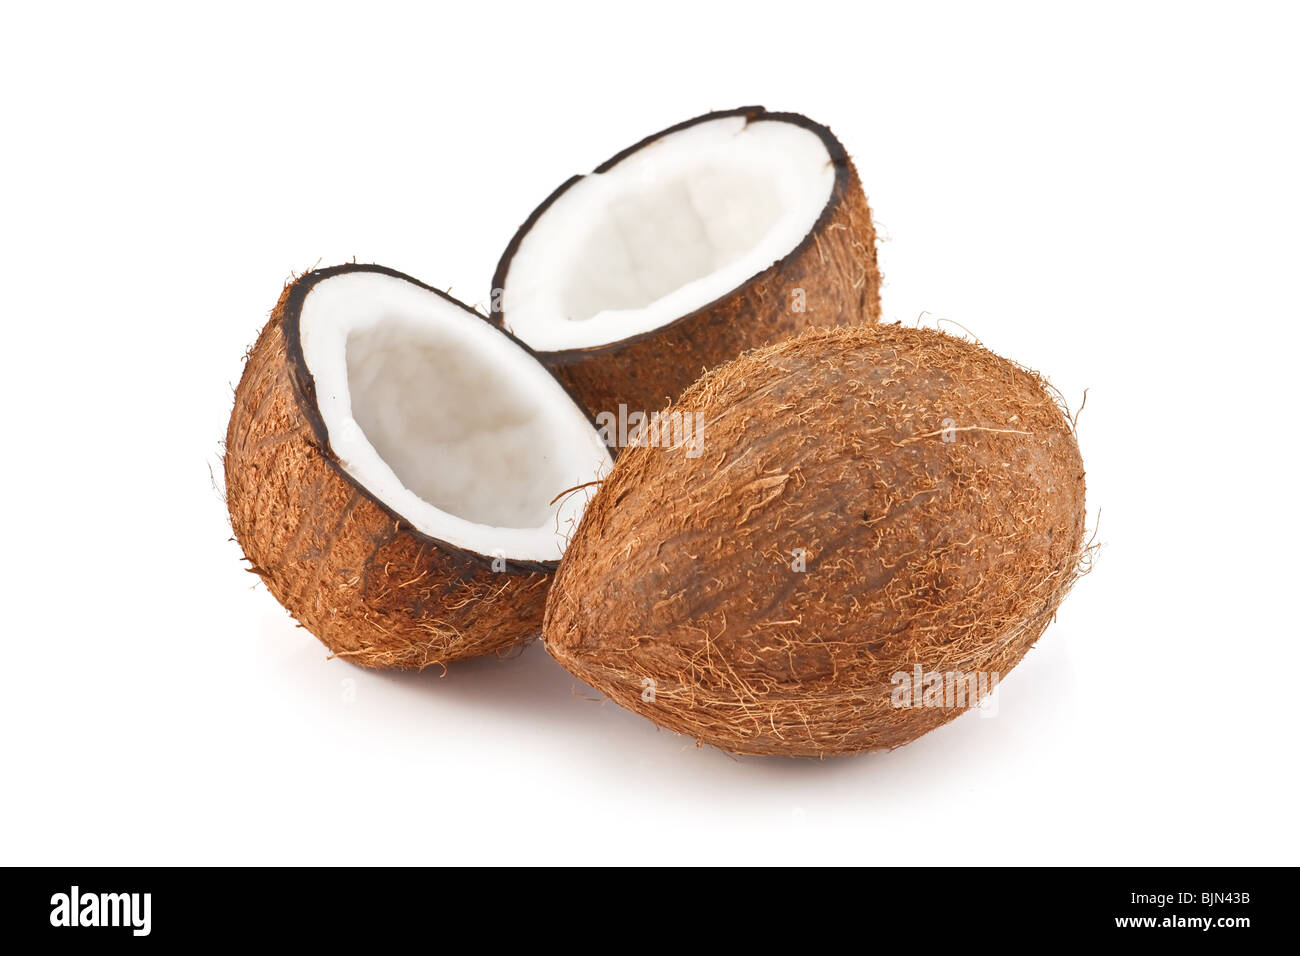 coconut isolated on white - Stock Image